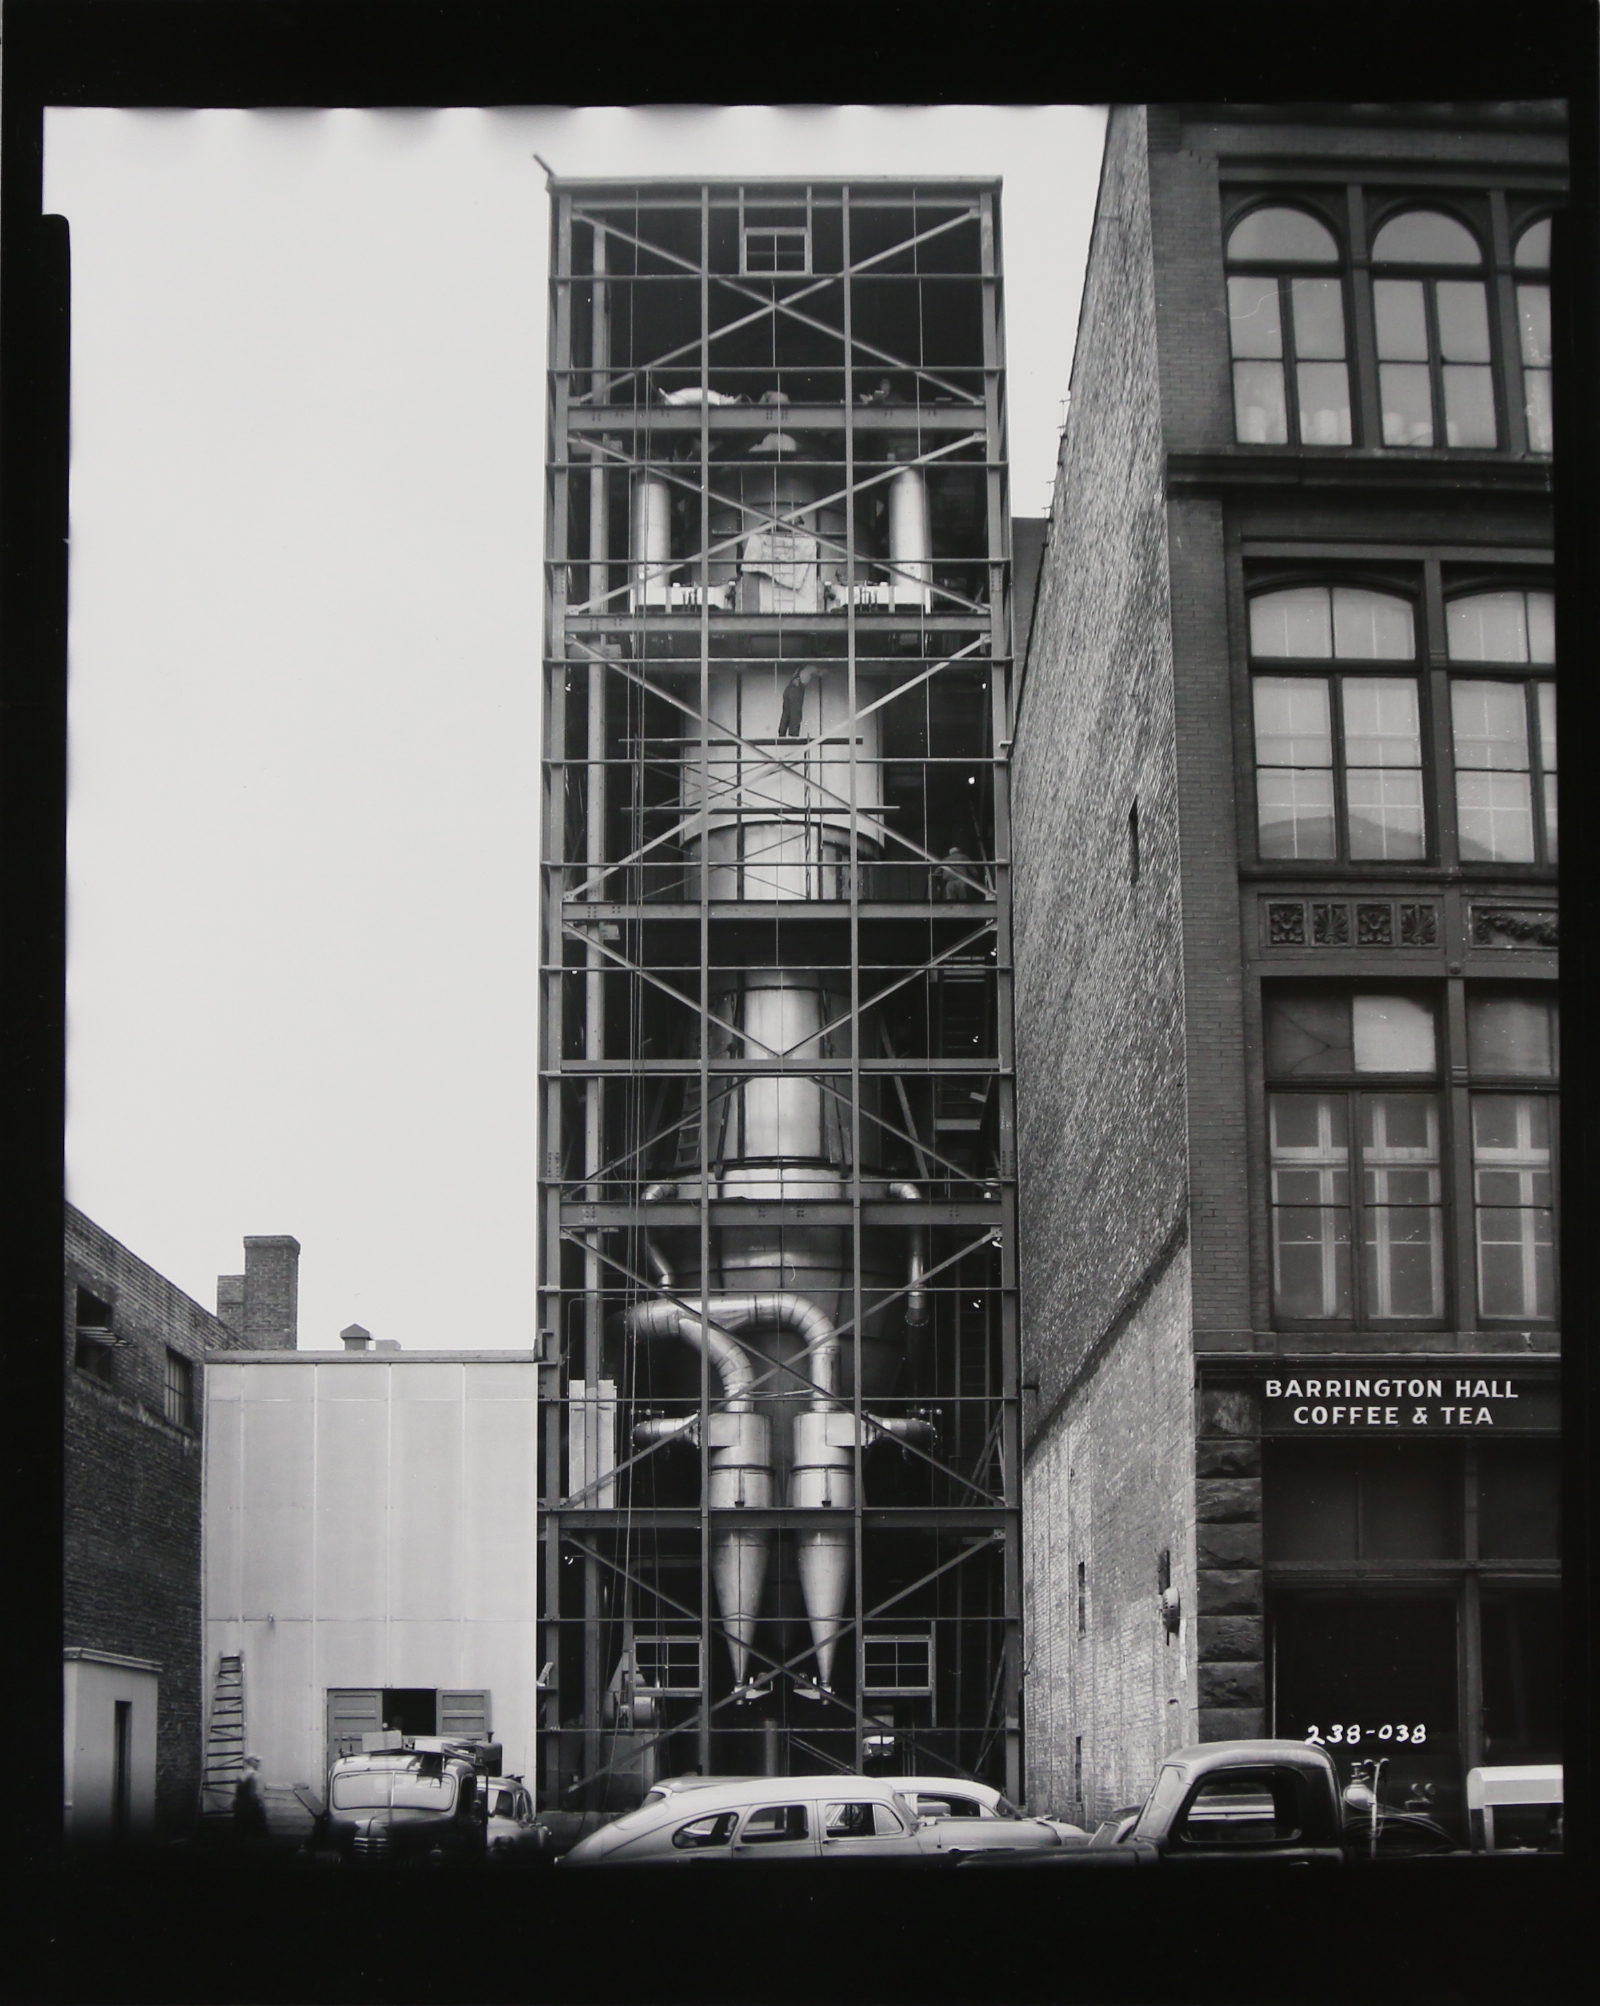 Circa 1917, the Baker Importing Company added a massive grinder to the buildings exterior to produce Barrington Hall Soluble Coffee.